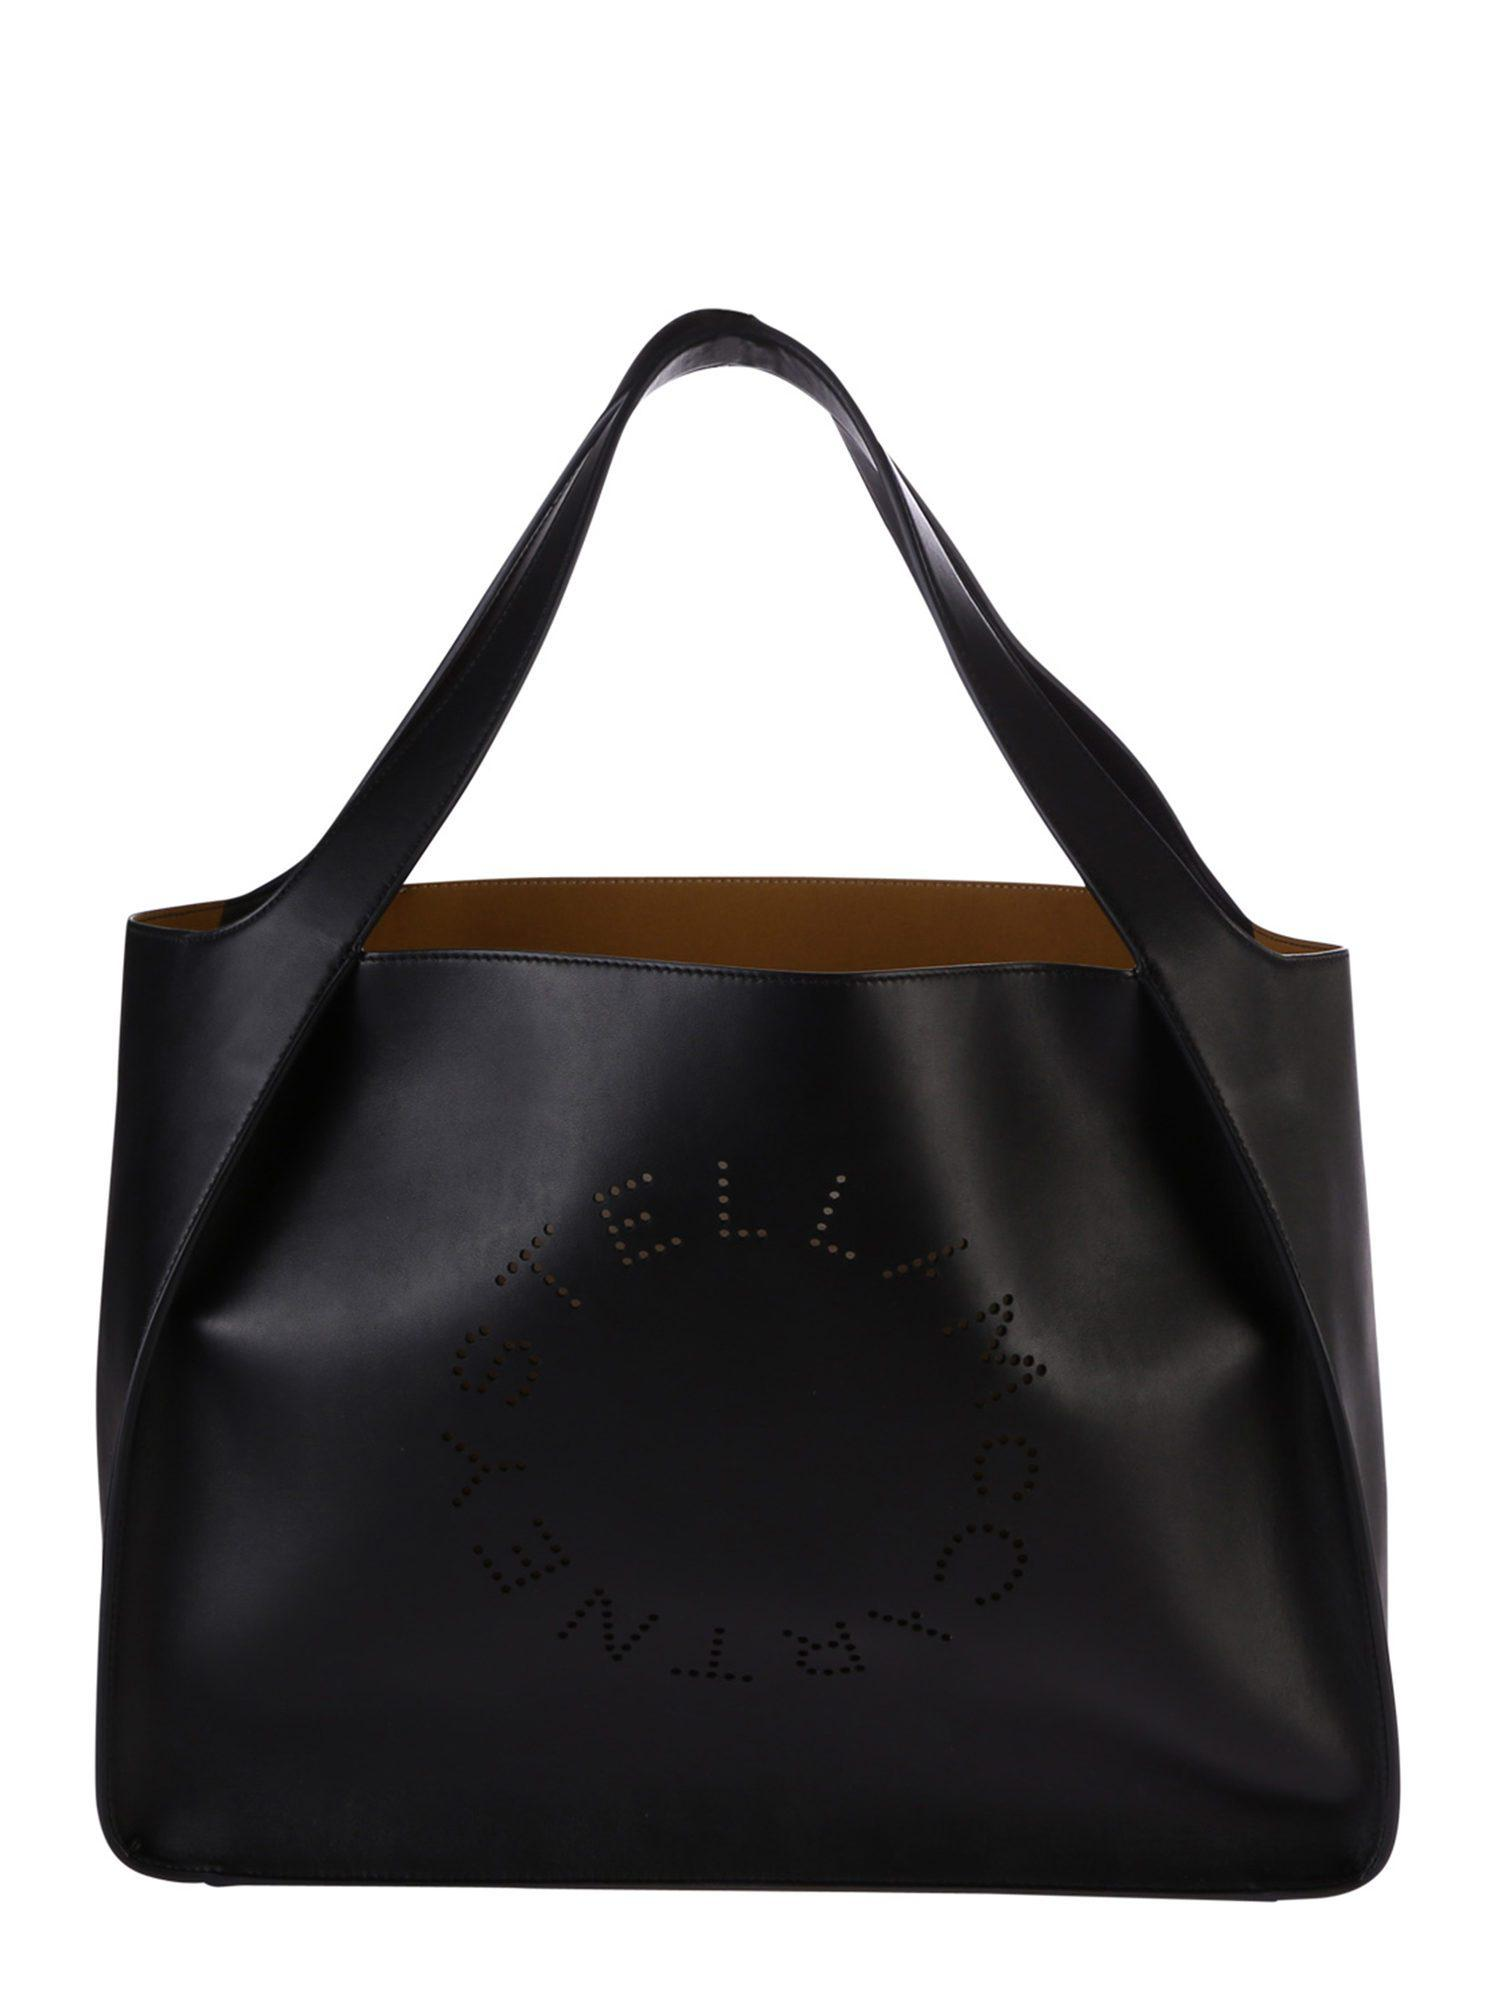 0ba04aed13e99 Lyst - Stella Mccartney Perforated Faux Leather Tote Bag in Black